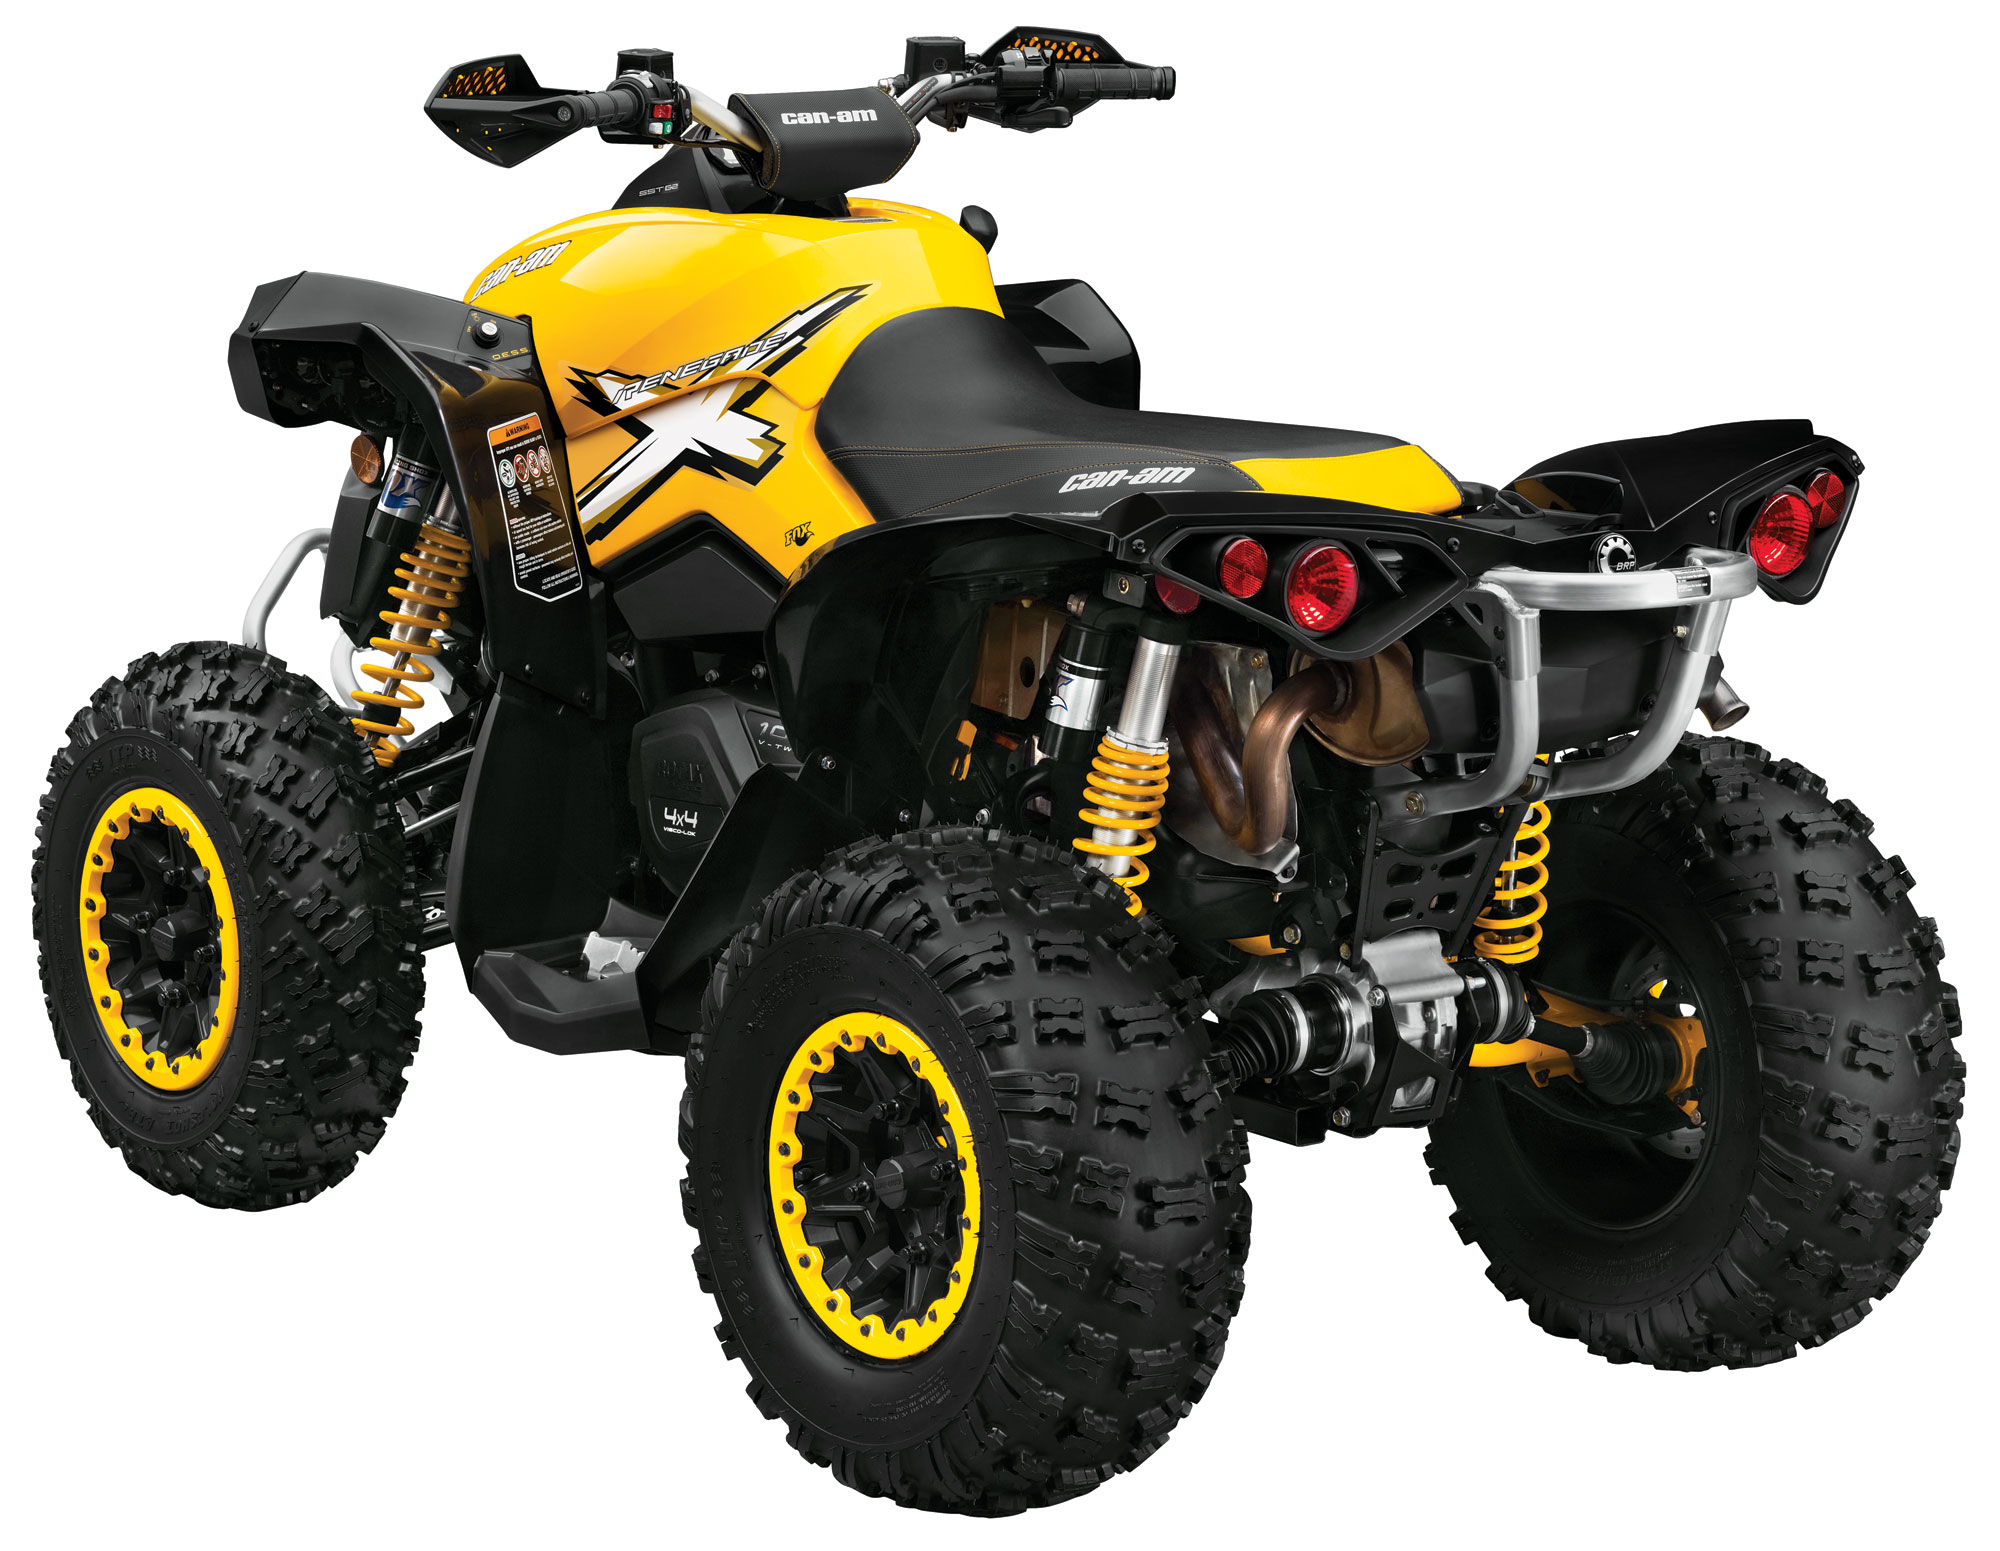 2013 Can-Am Renegade Xxc 1000 Review